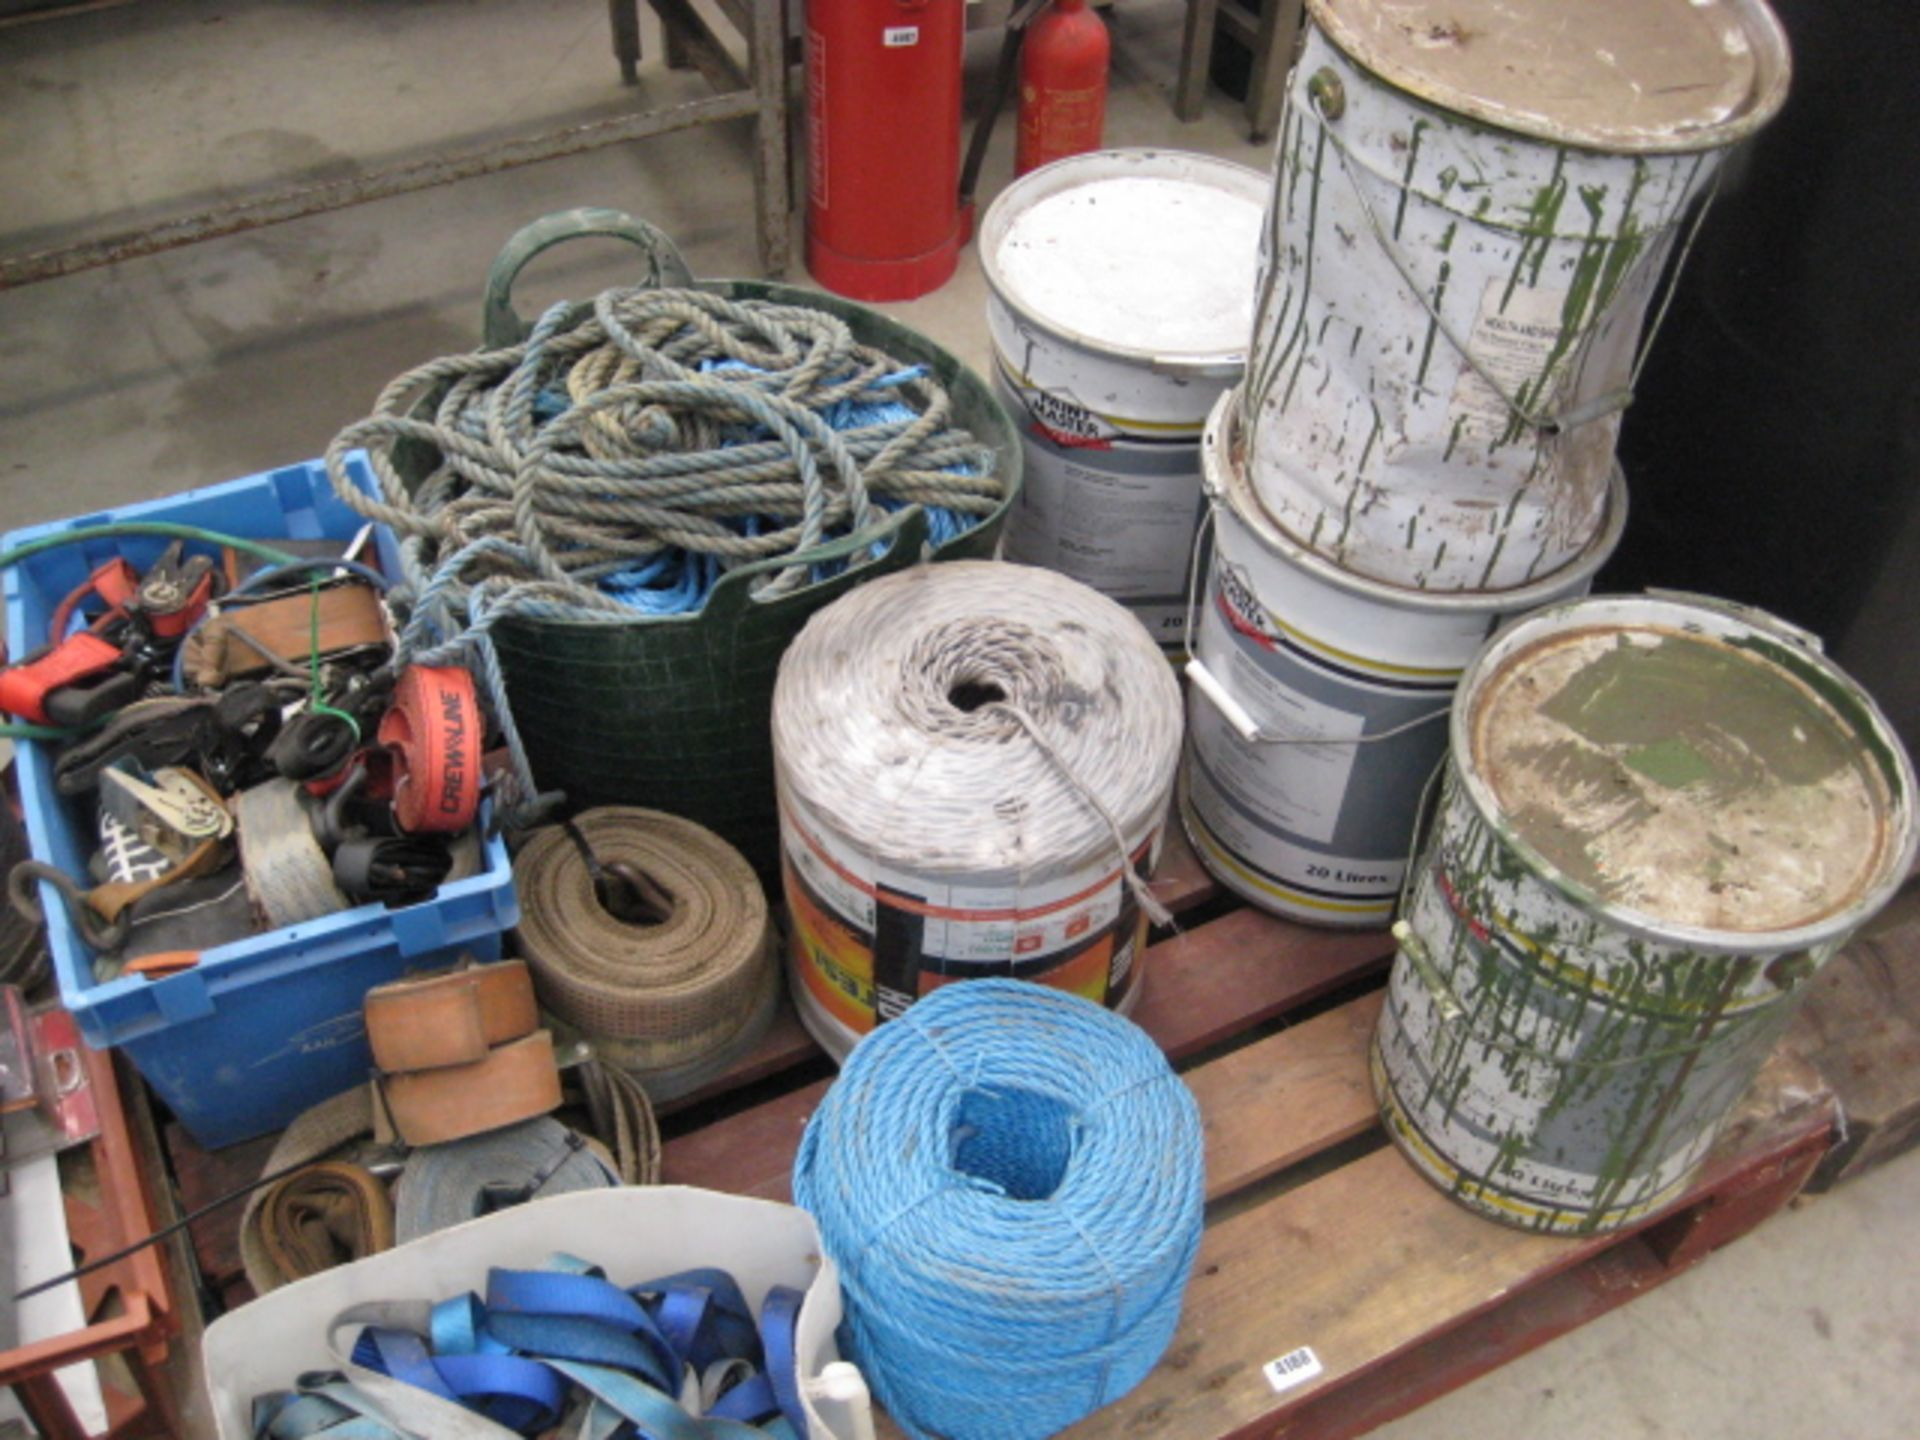 Lot 4188 - Pallet containing a large quantity of rope, ratchet straps and tie down straps together with 4